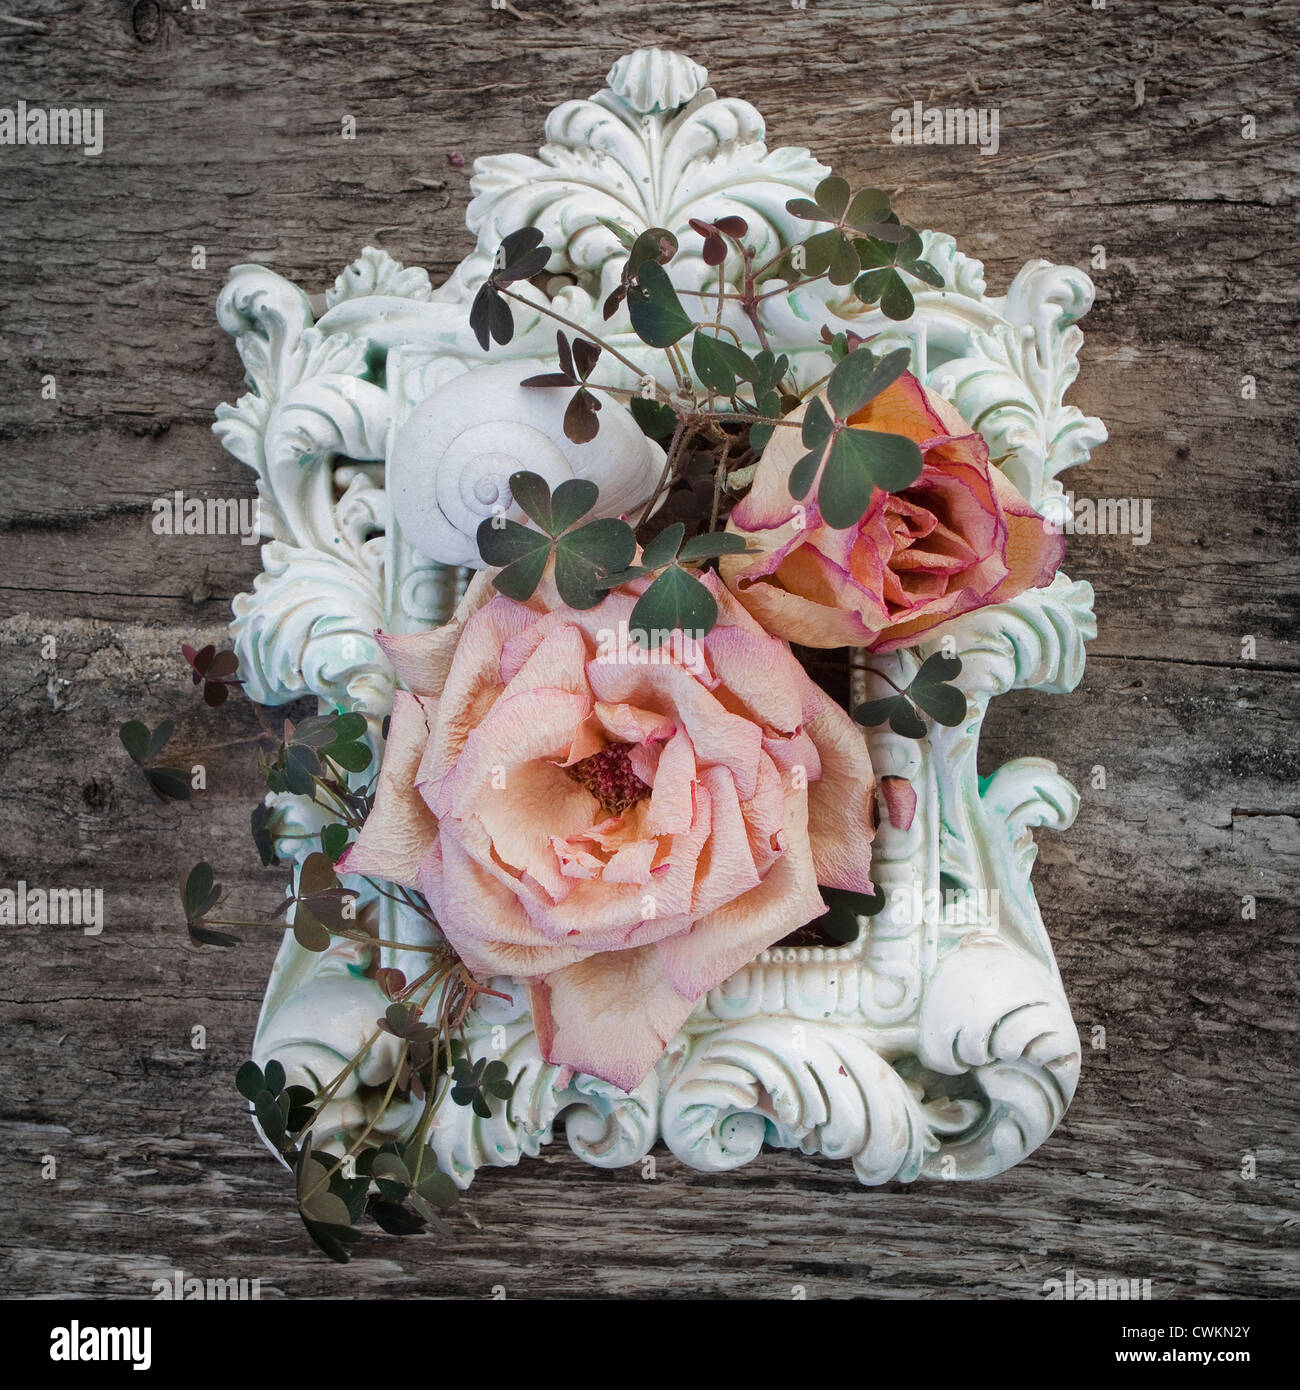 old, vintage frame, decorated with dry roses and clover on a wood background - Stock Image